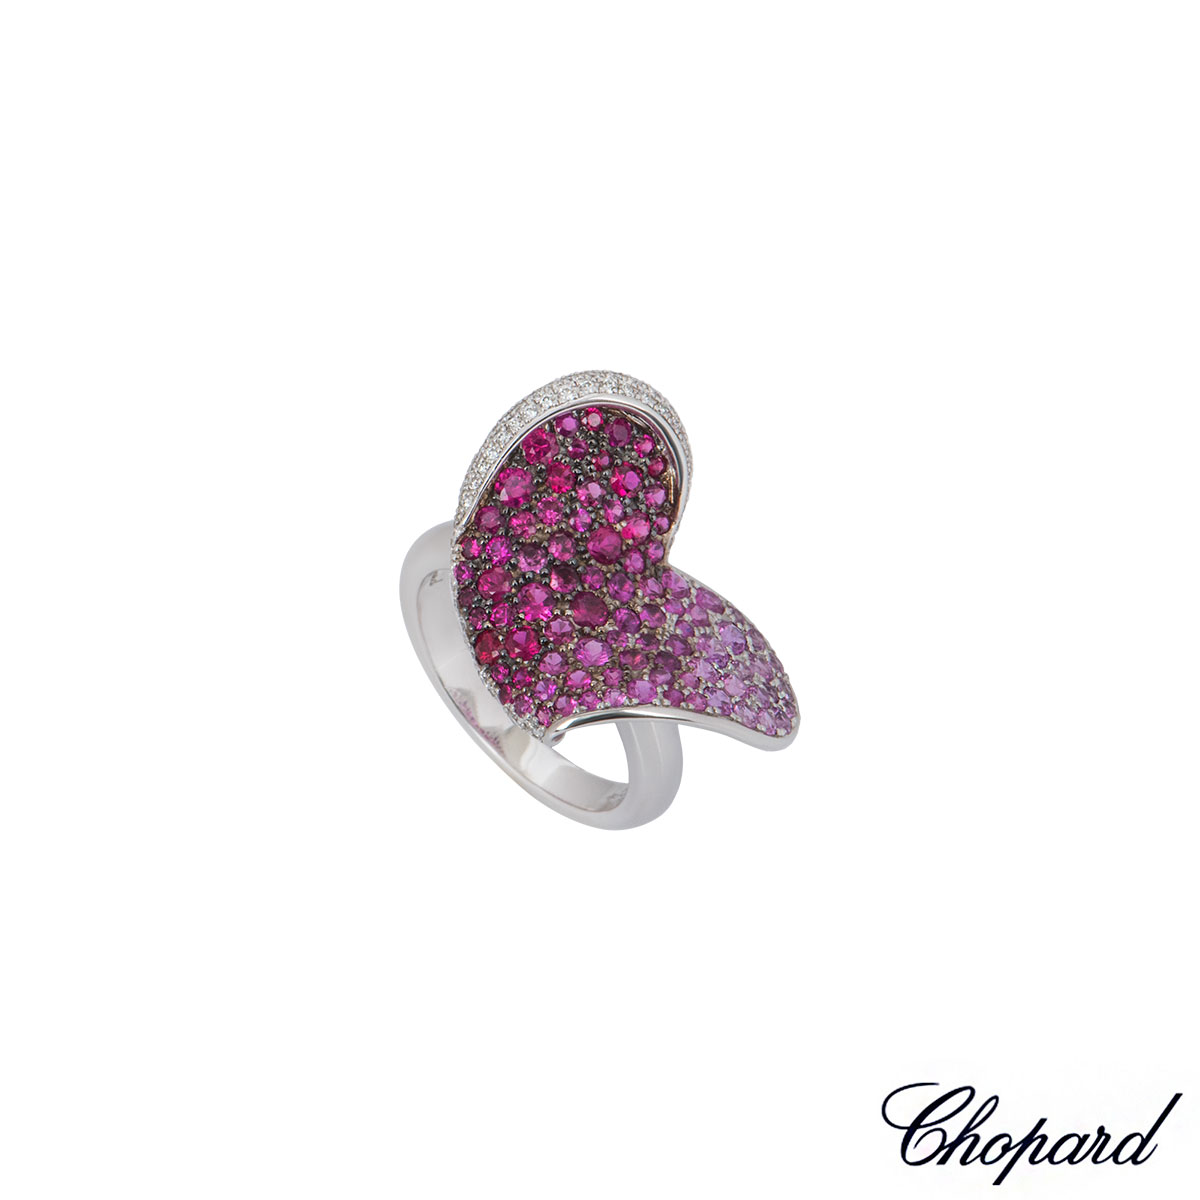 Chopard Heart Flower Ring